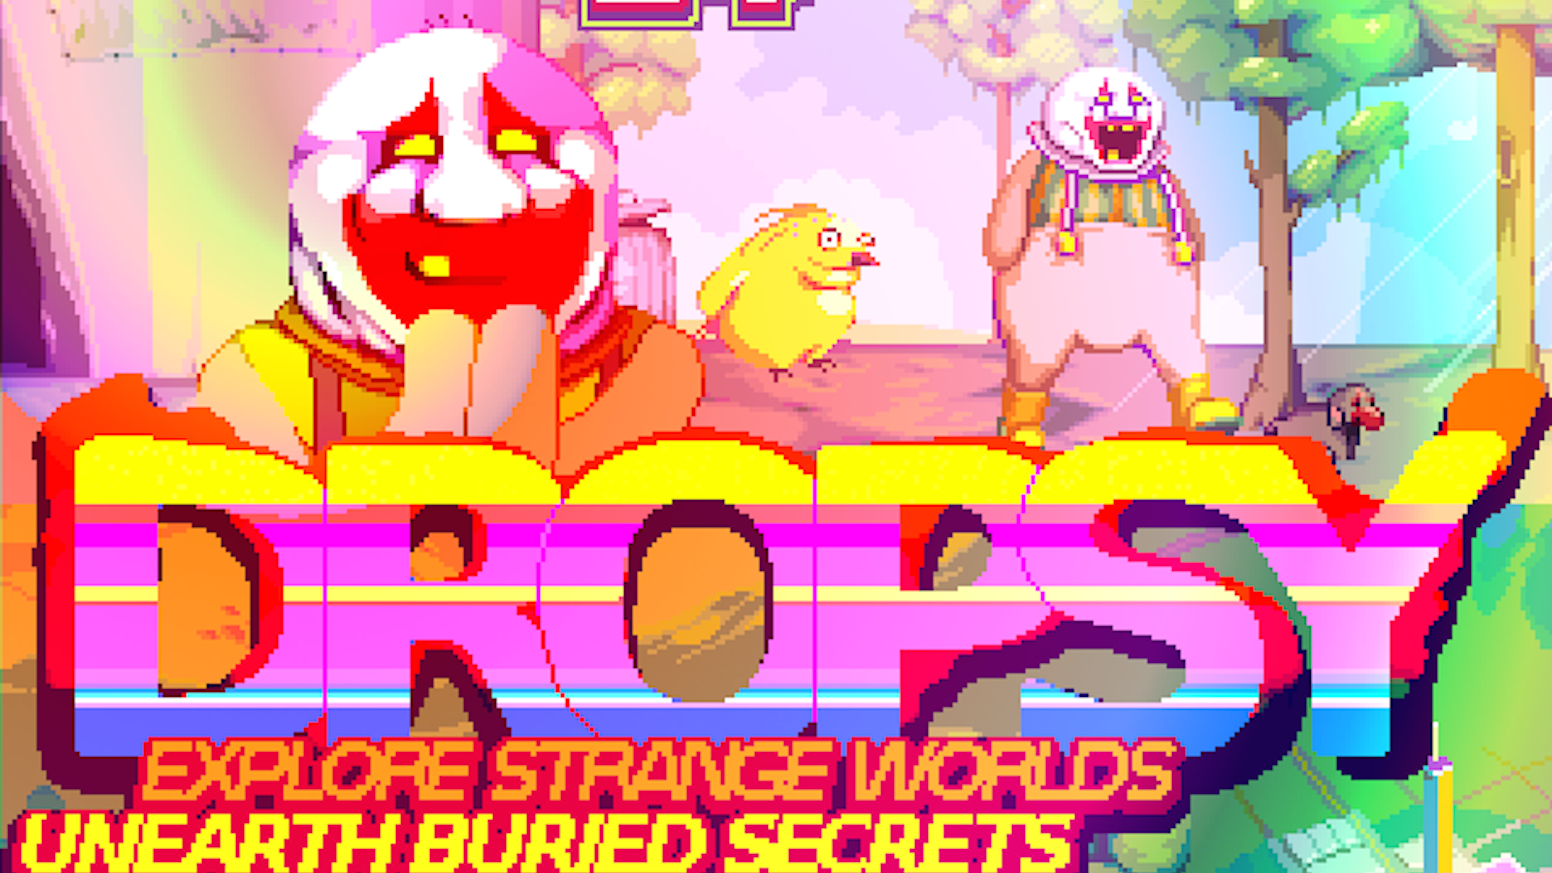 Impart love to a surreal, grotesque world as a misunderstood but cheerful clown. Discover a vast mythos in the process! PC/MAC/LINUX